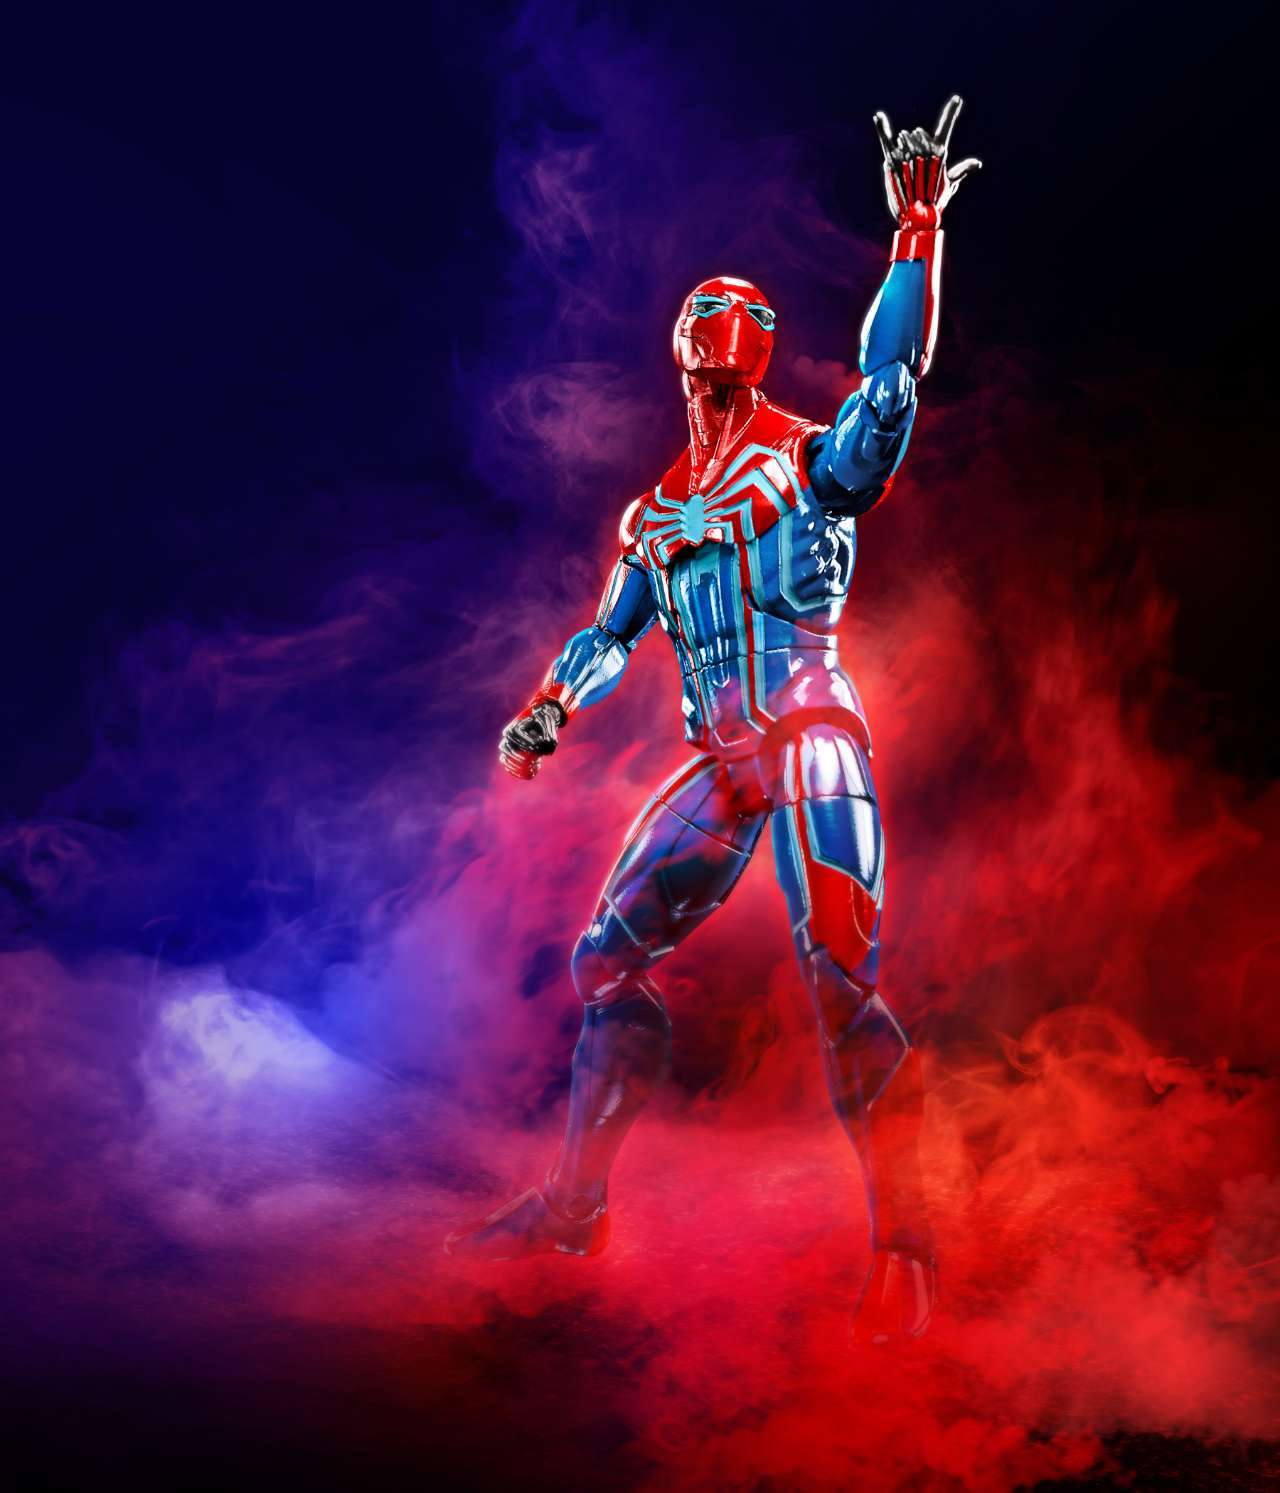 HASBRO MARVEL LEGENDS SERIES 6-INCH VELOCITY SUIT SPIDER-MAN